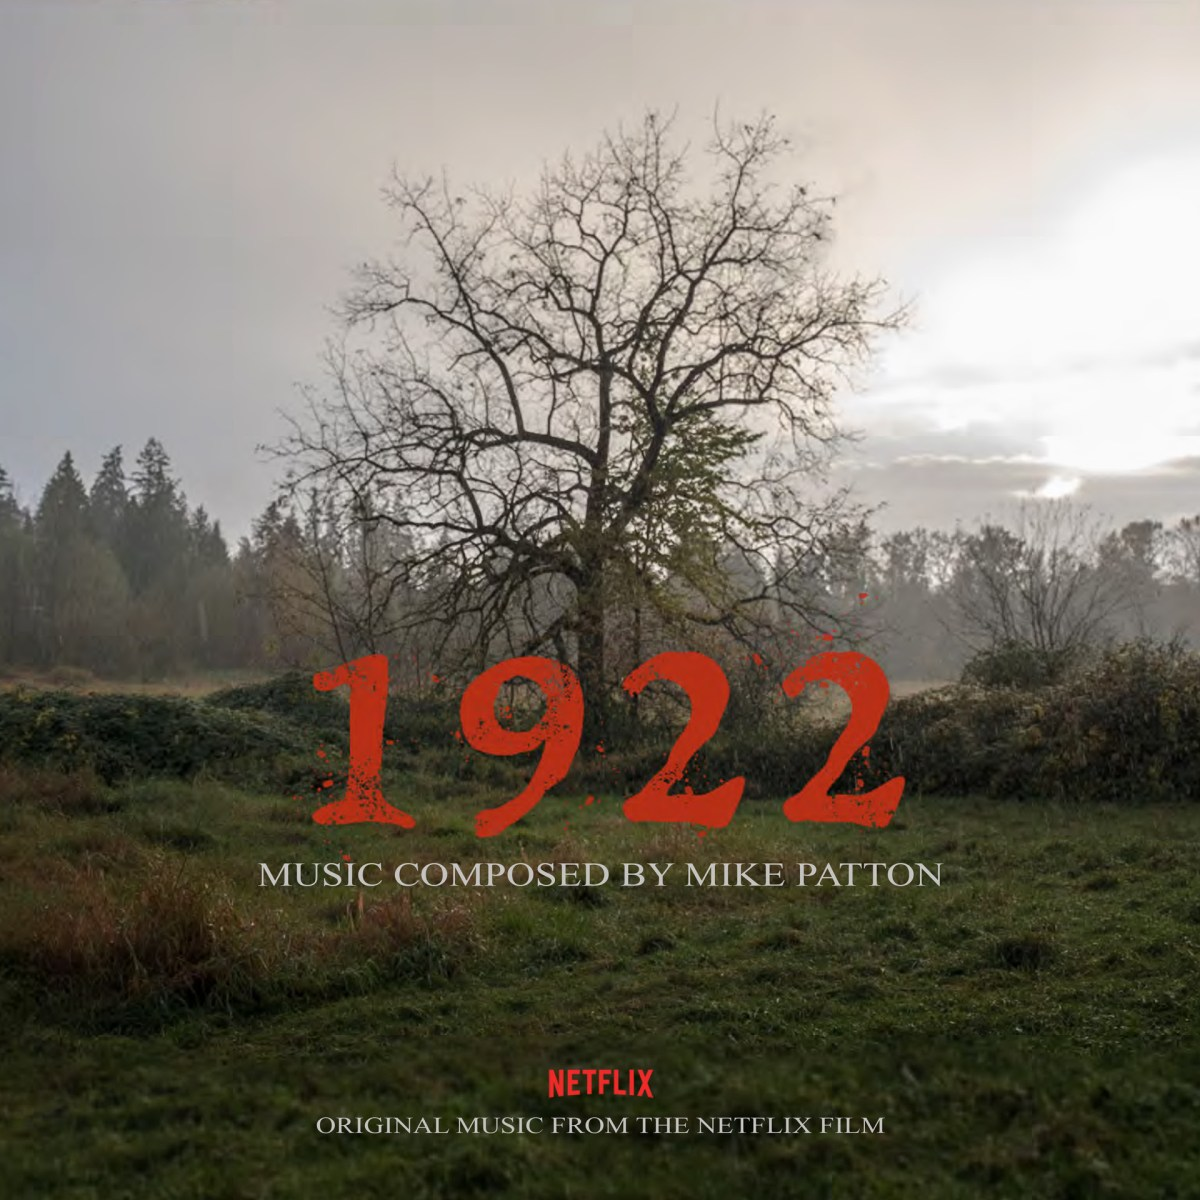 Mike Patton's 1922 Score Available July 20 via Ipecac; Patton Discusses Release via Modern School of Film Podcast